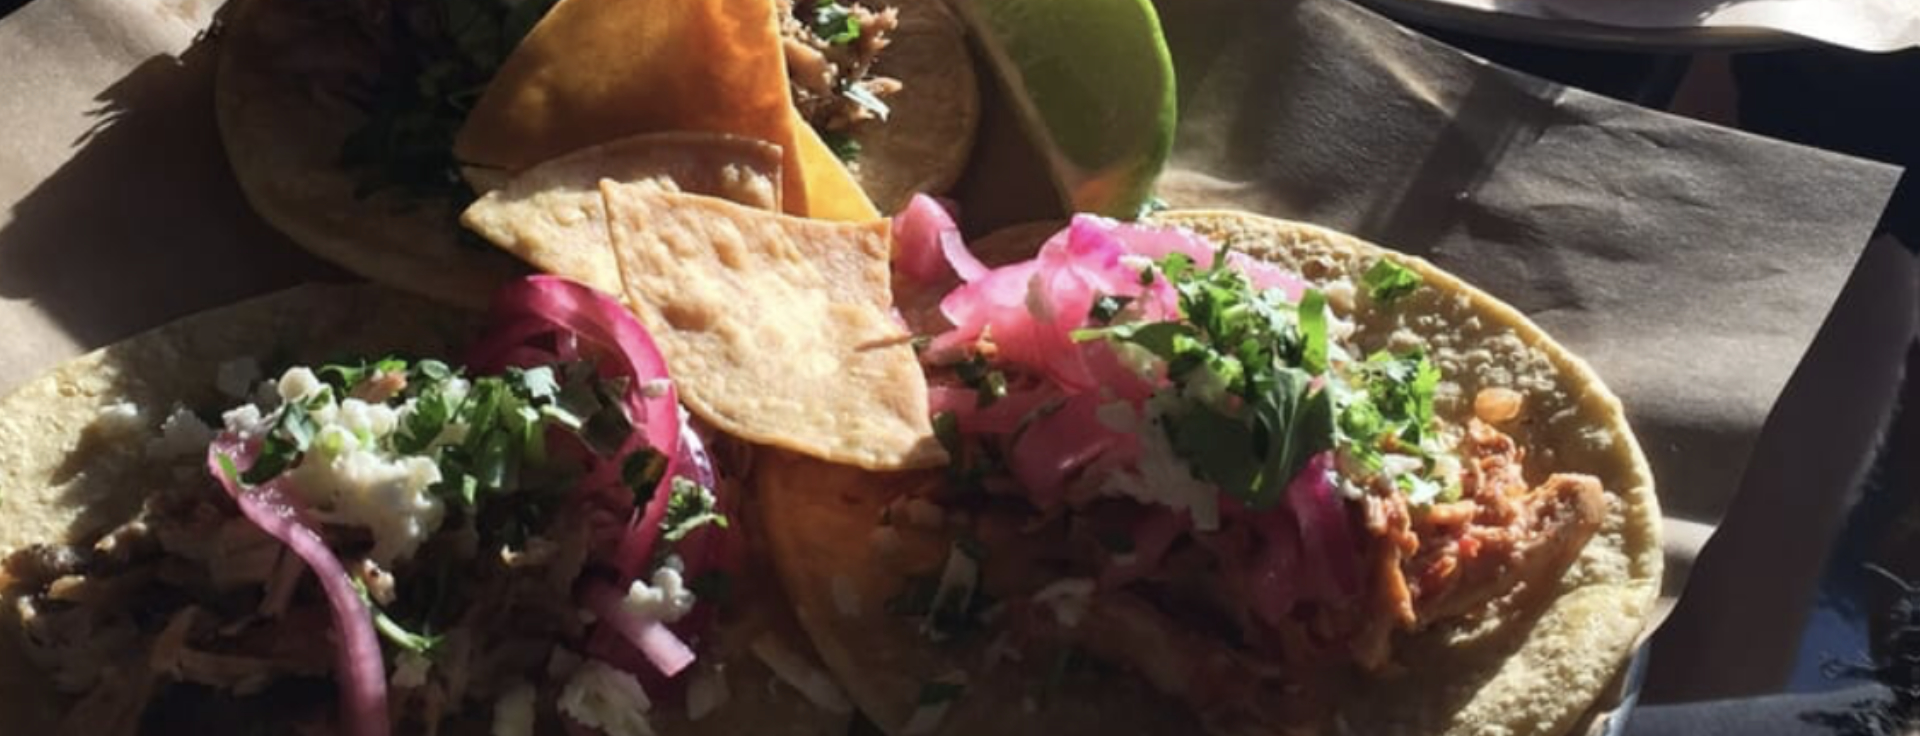 taco traditional mexican food